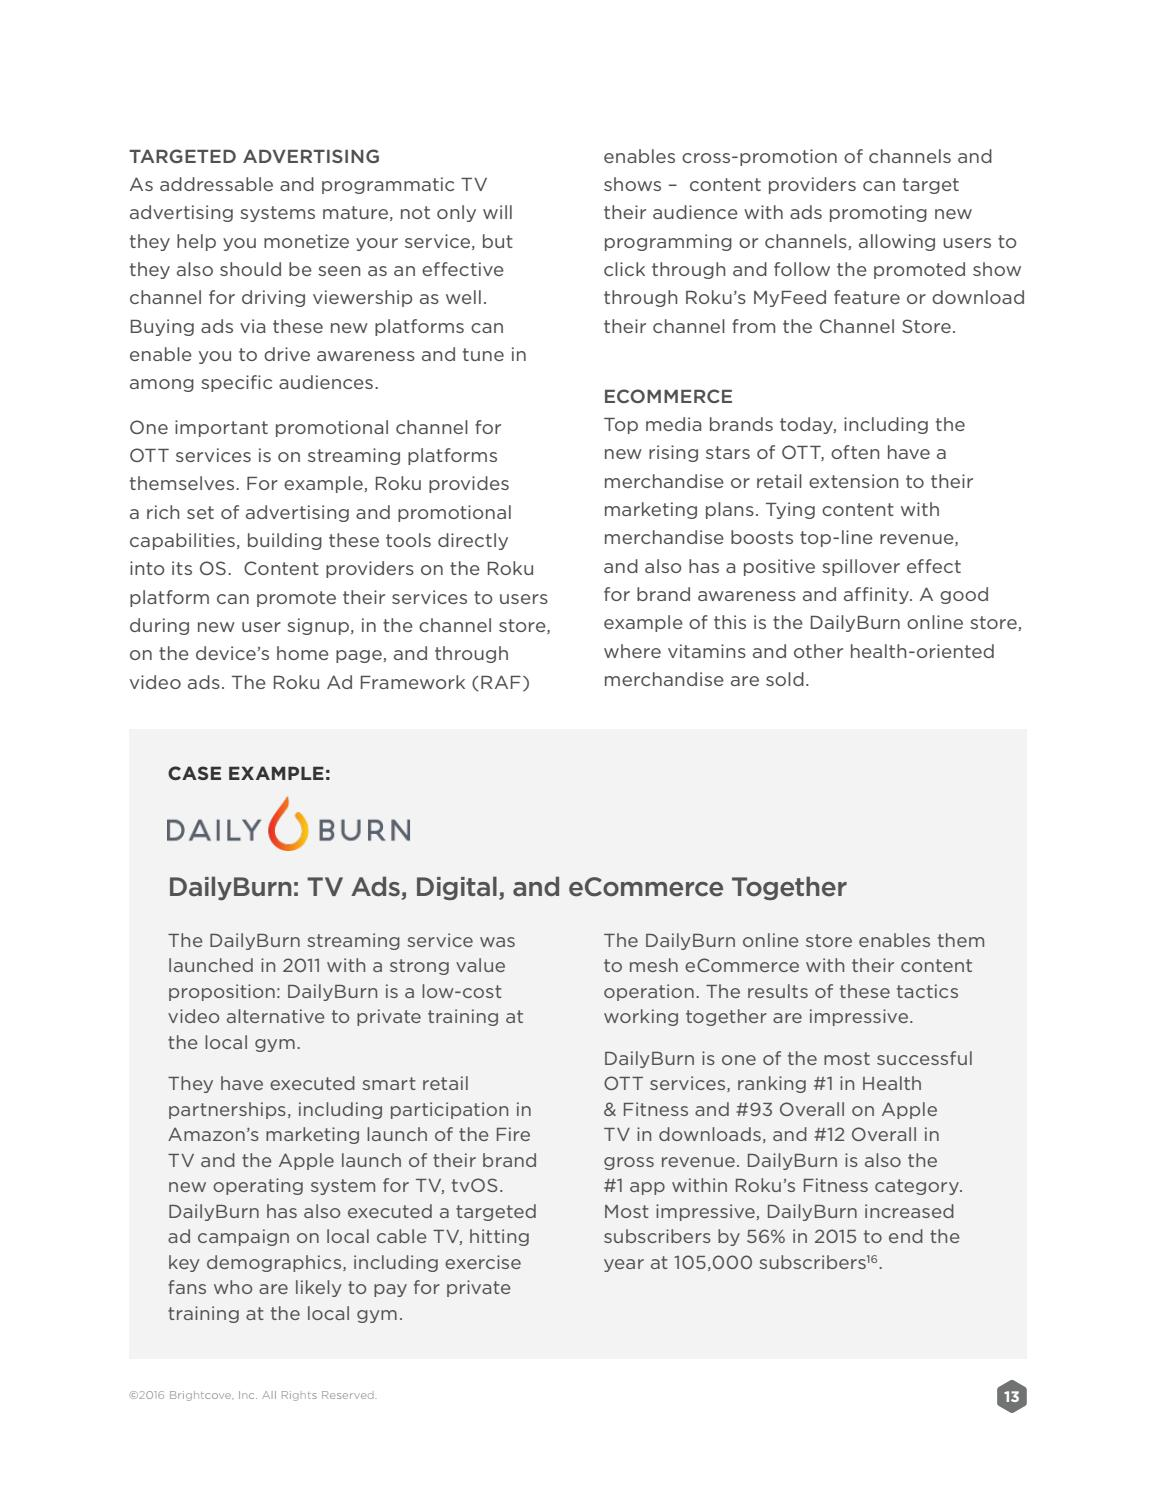 Brightcove White paper - 5 smart tactics for ott success by